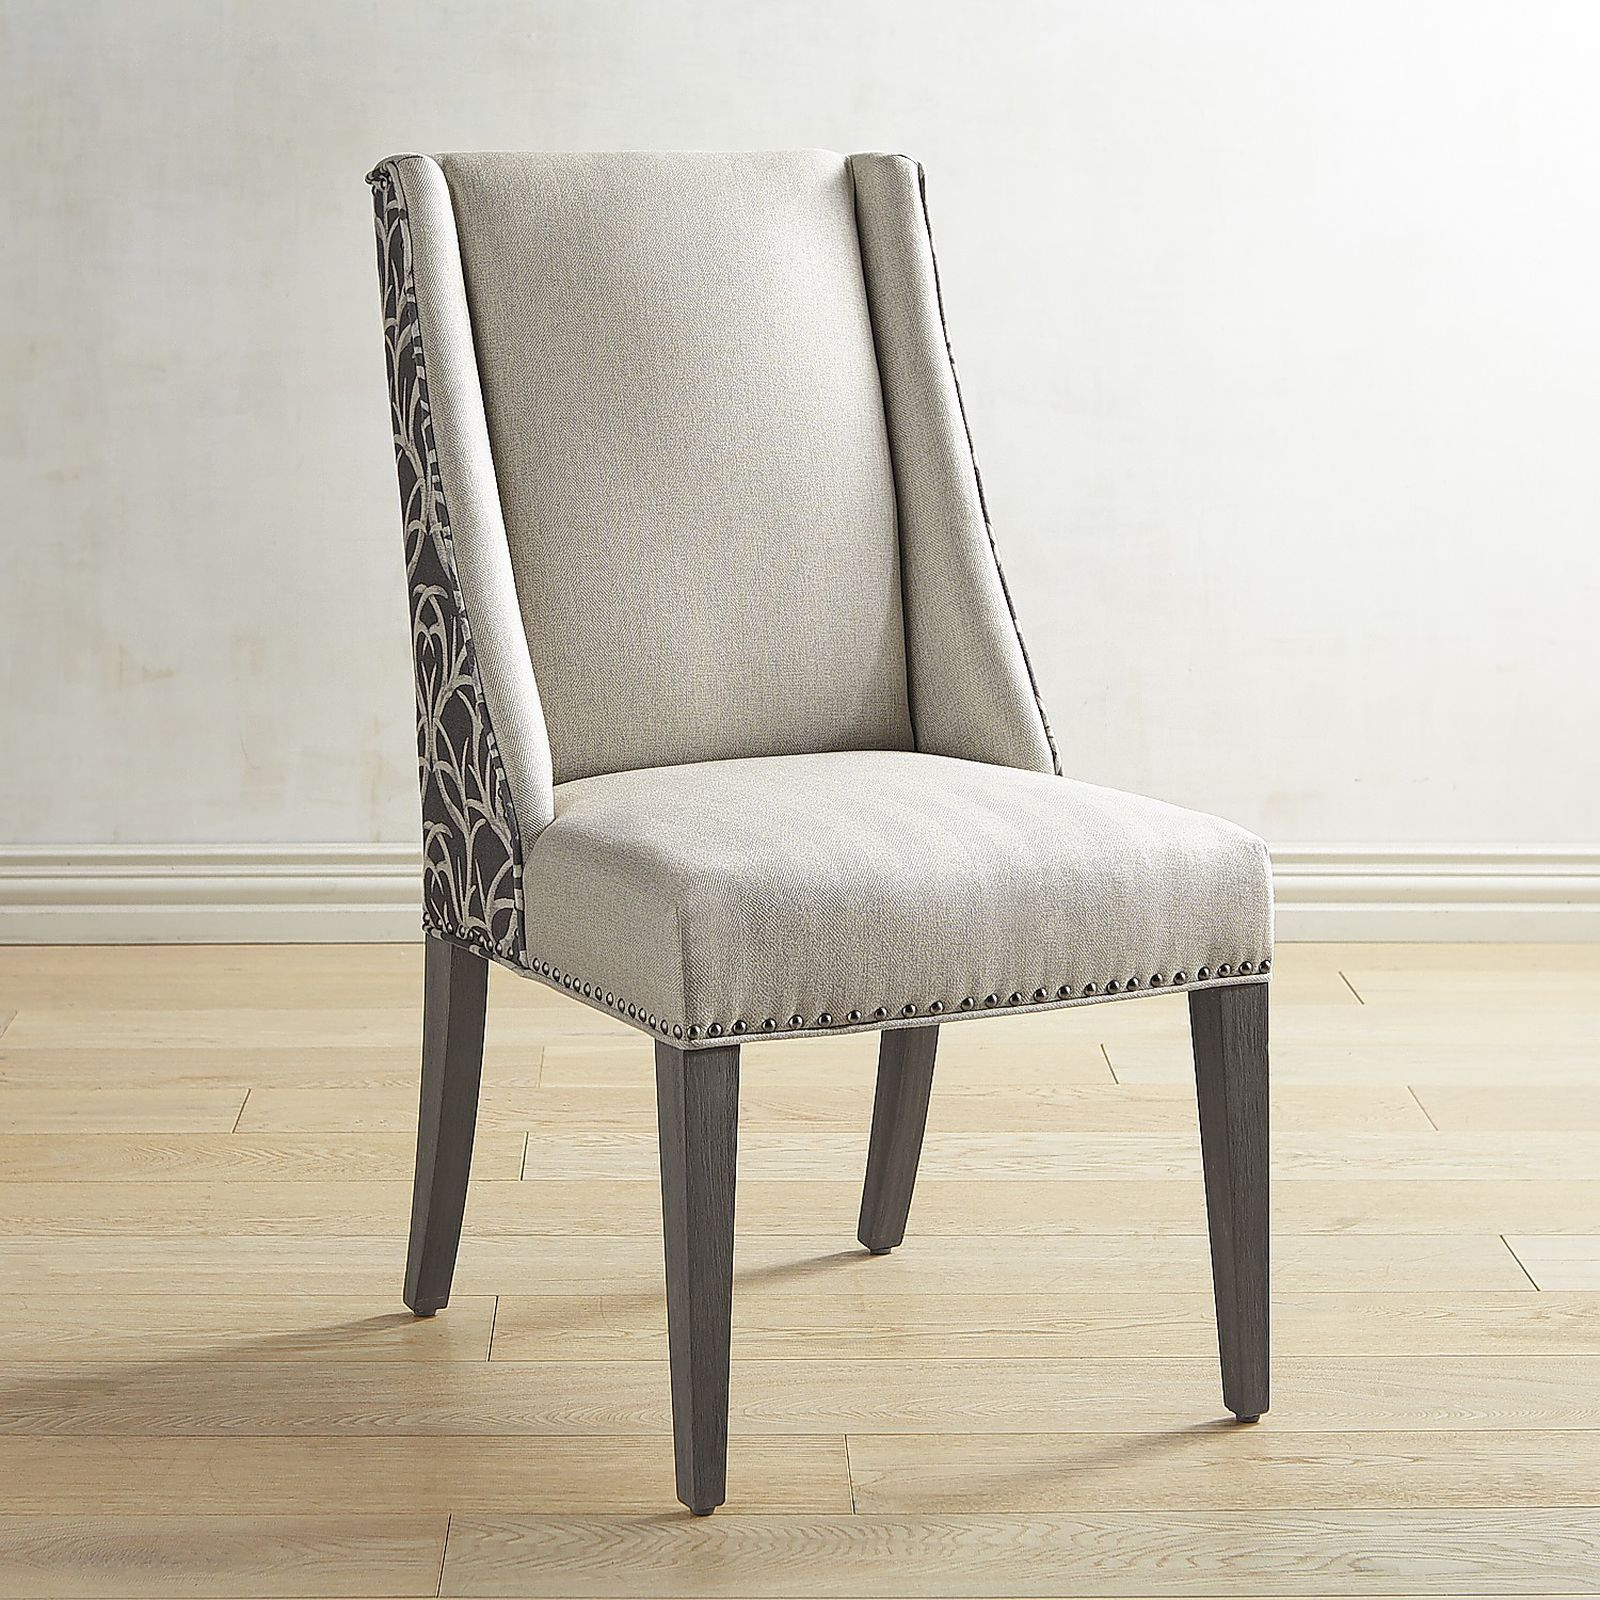 Owen Extra Points Antler Flax Dining Chair Pier 1 Imports Dinning Room Chairs Dining Chairs Furniture Chair